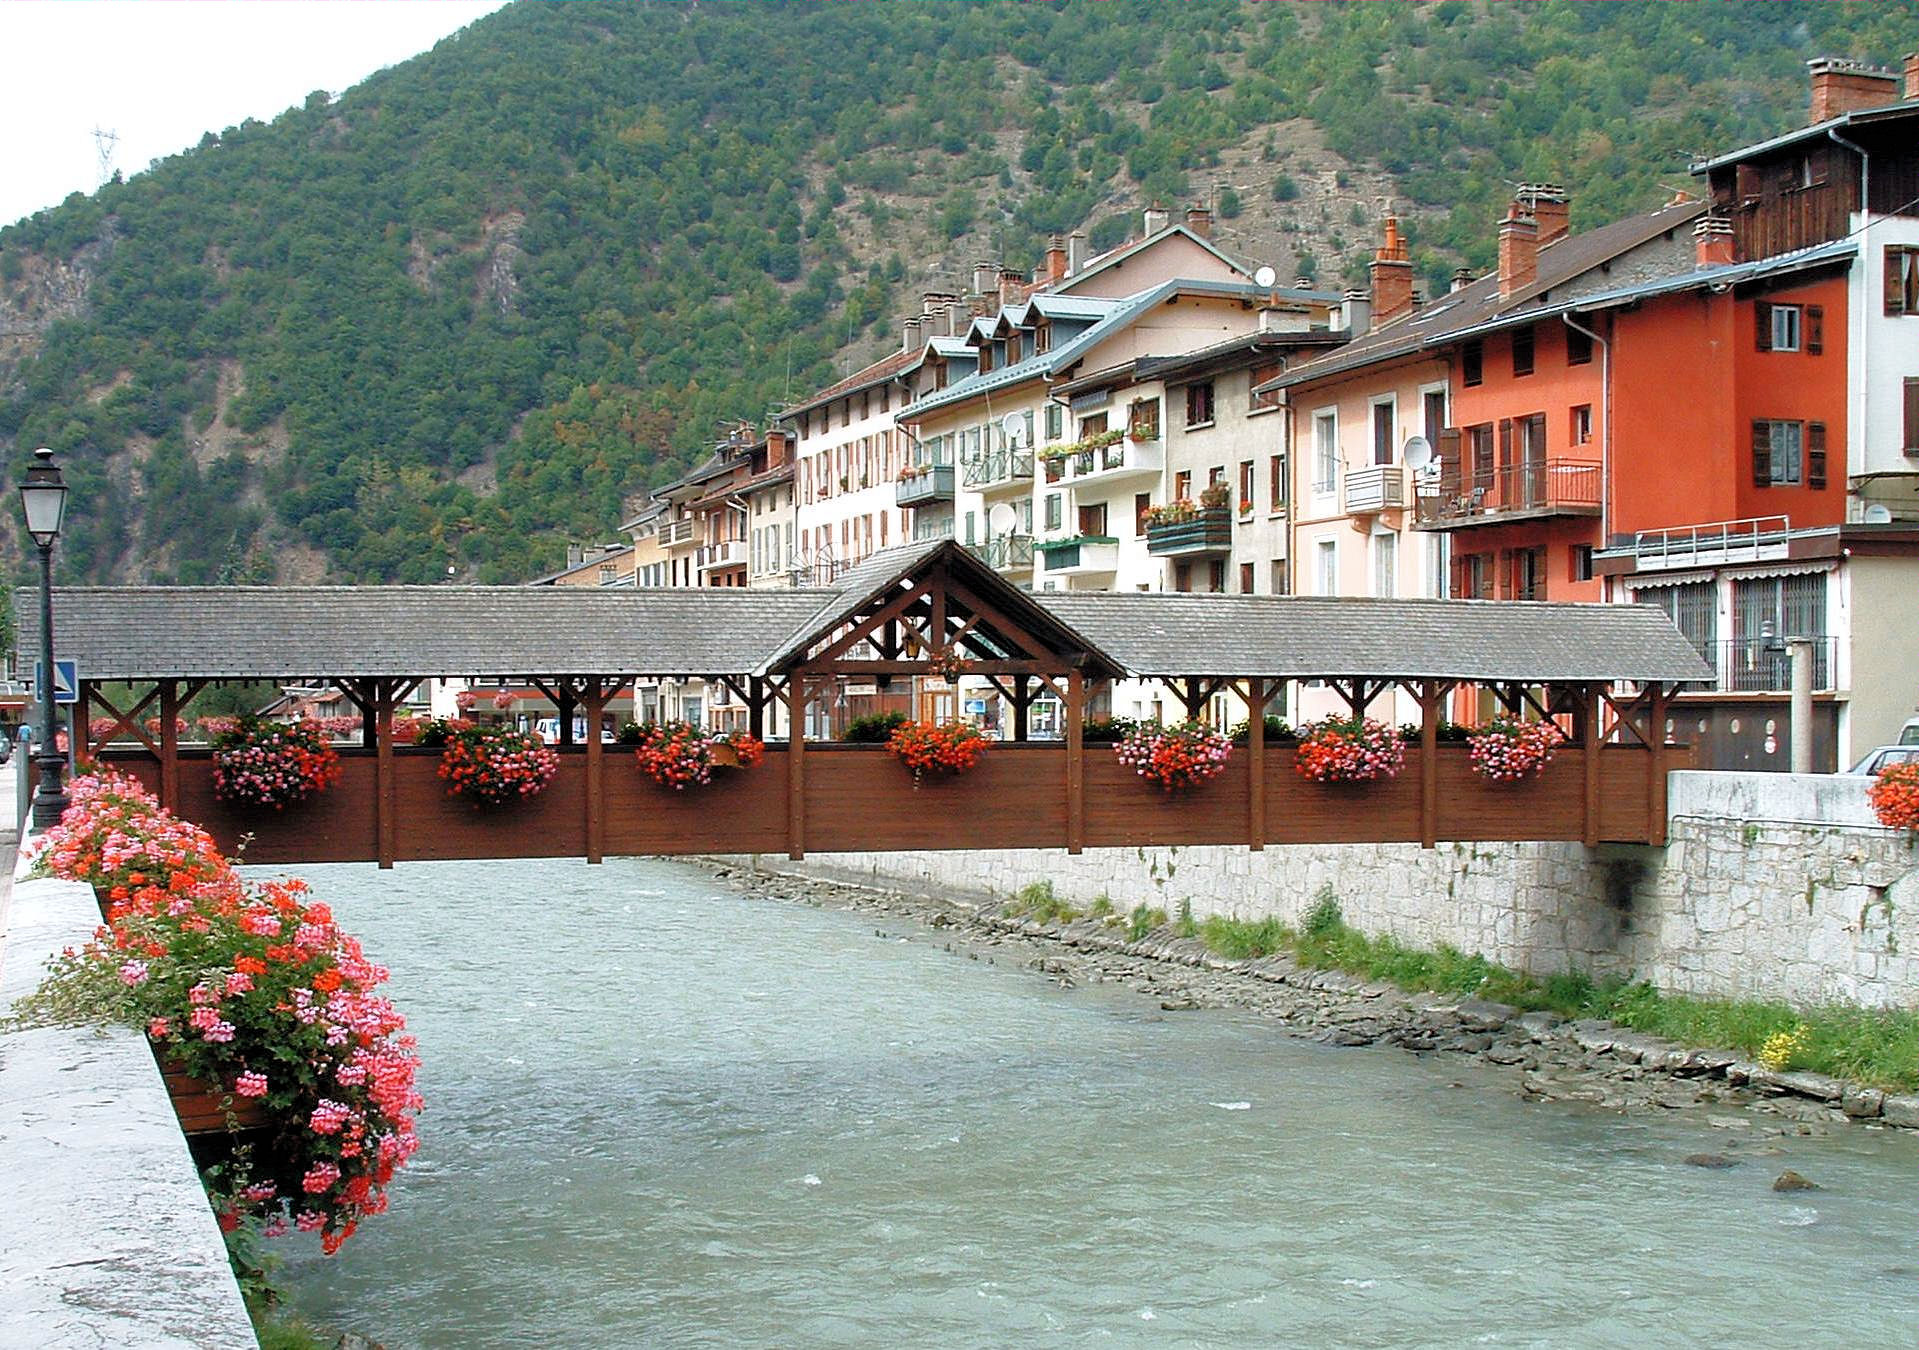 Moutiers-footbridge-over-the-Isere-river